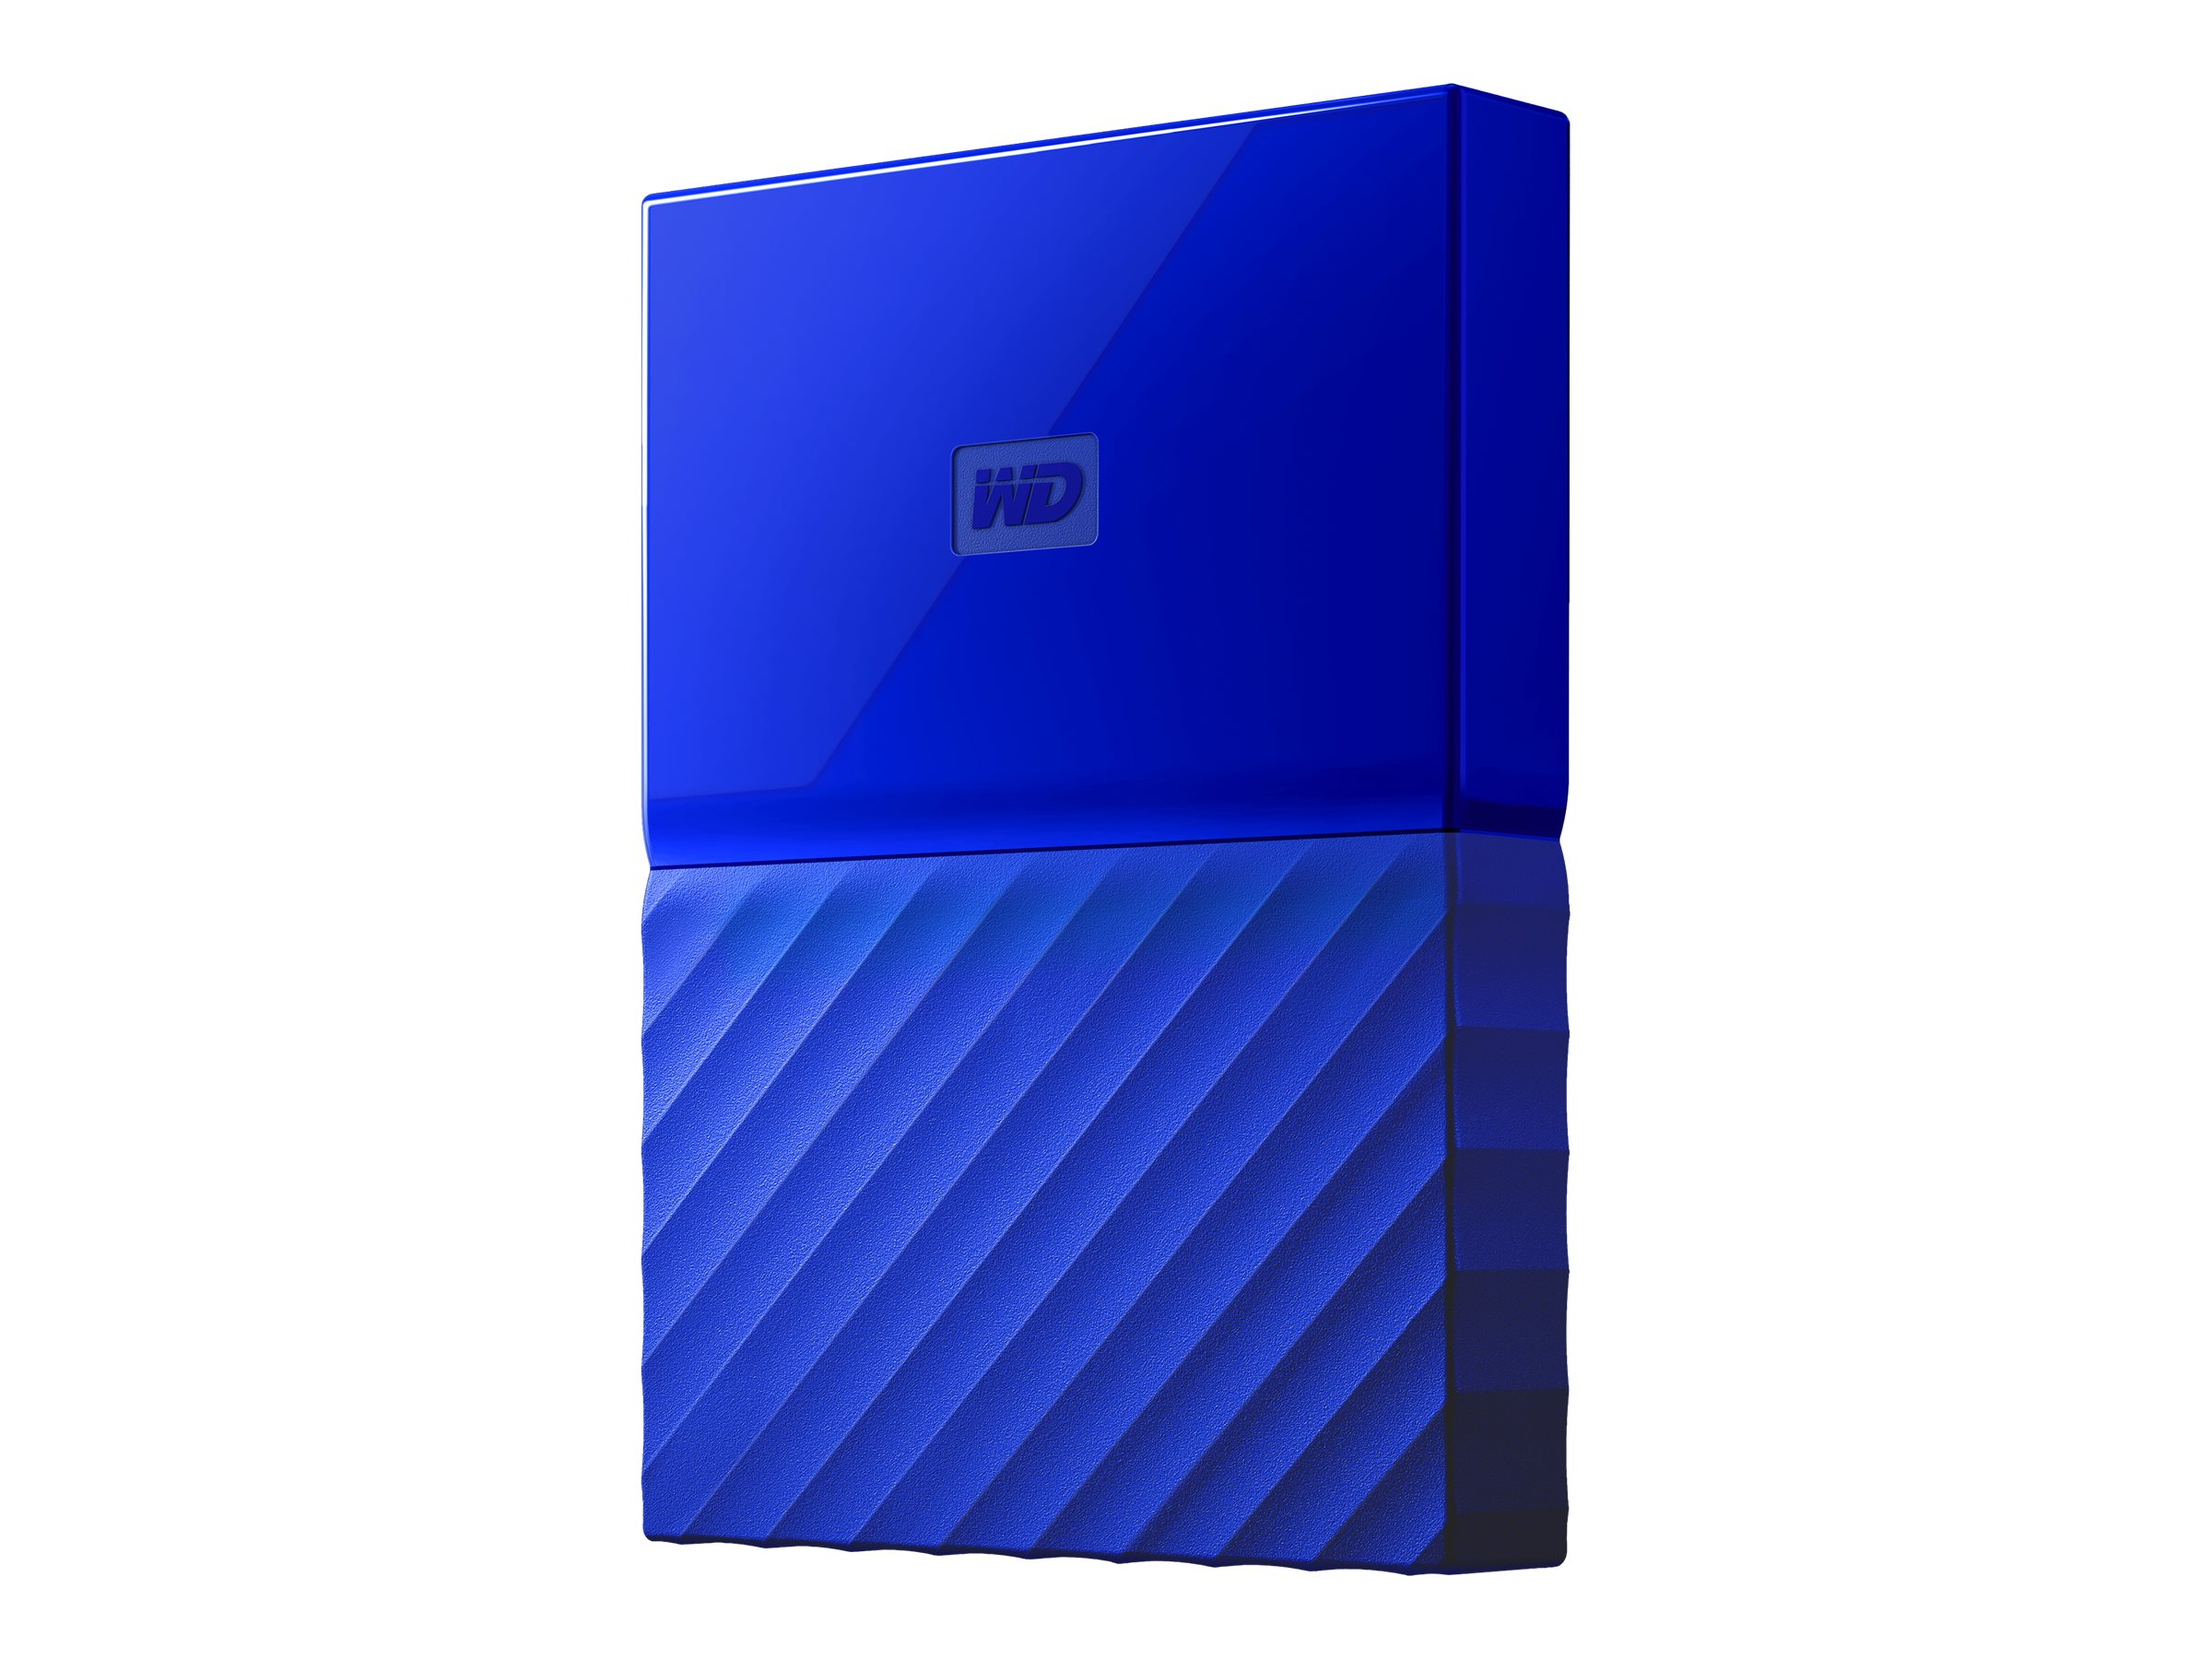 WD 2TB My Passport USB 3.0 Portable Hard Drive - Blue